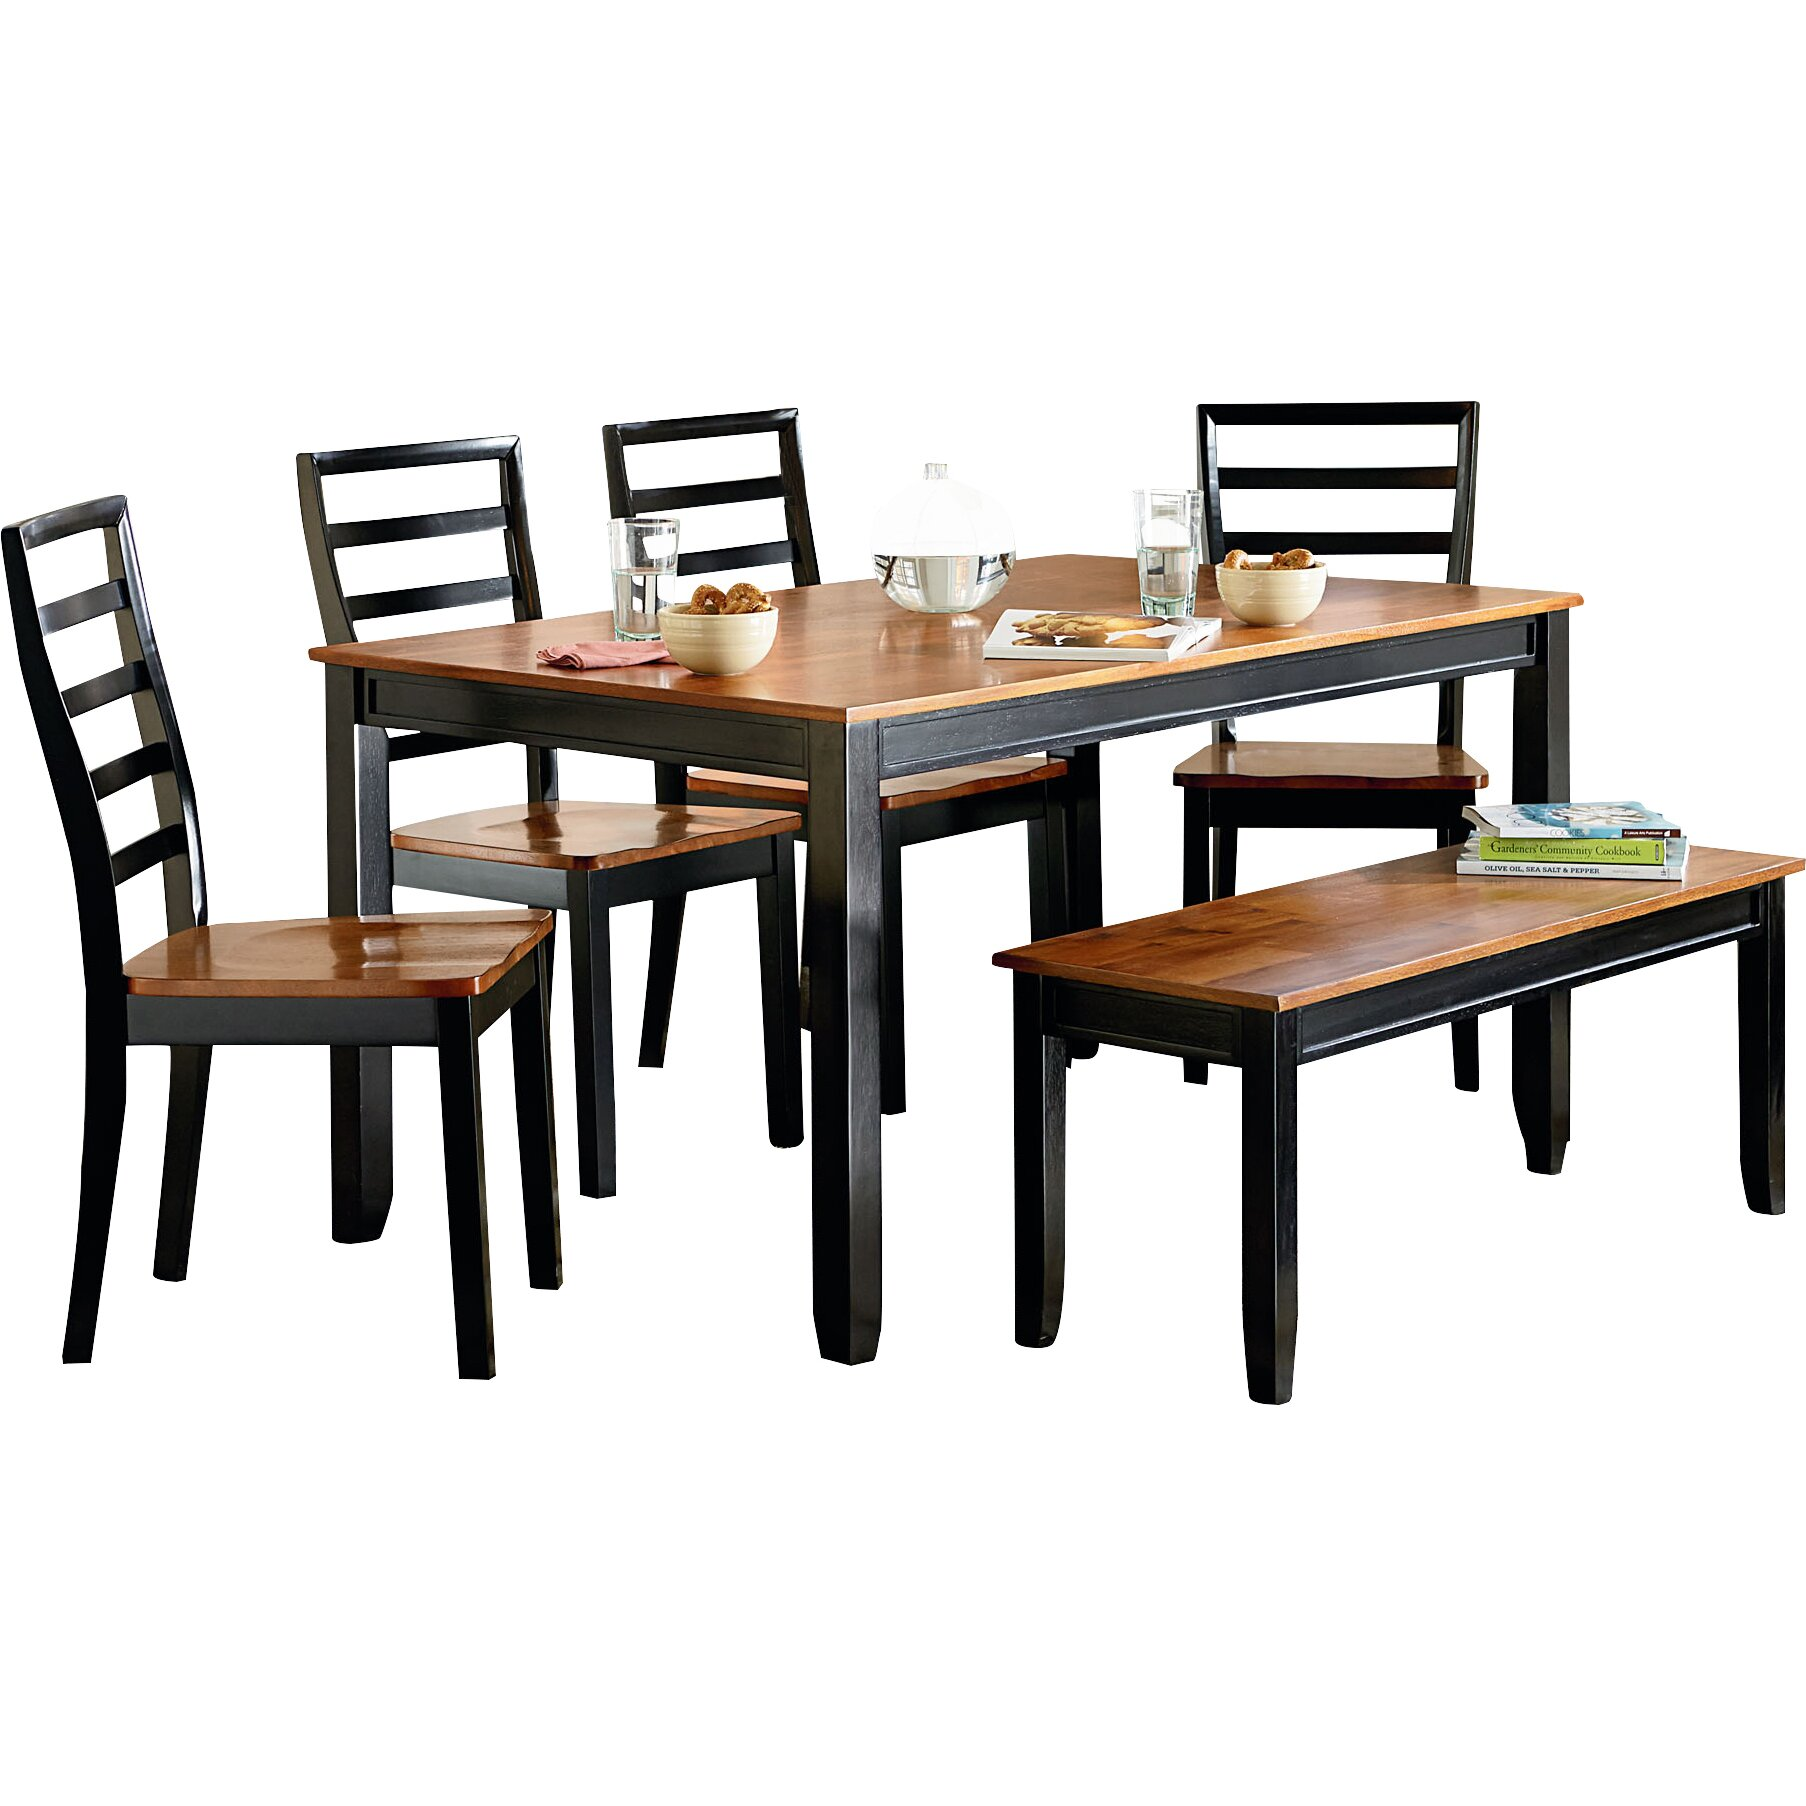 Standard furniture lexford 5 piece dining set reviews for Kitchen dining furniture